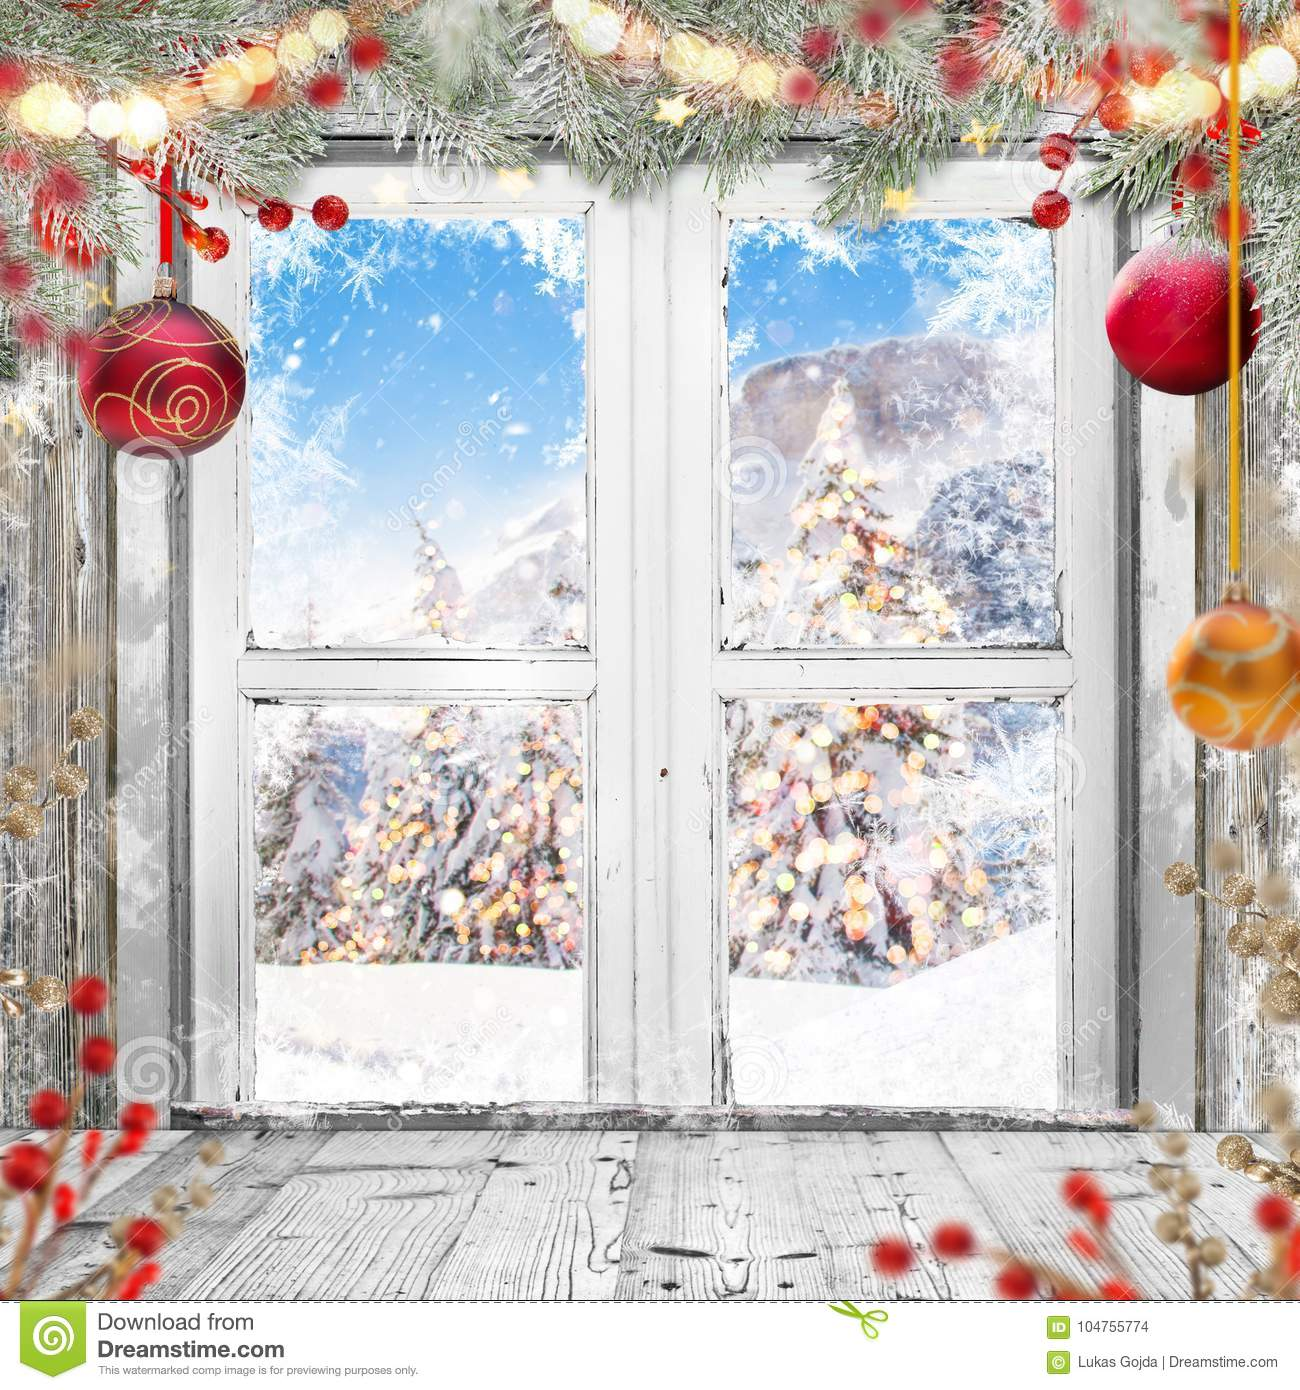 Old House Christmas Decorations: Christmas Old White Window With Decorations. Stock Photo